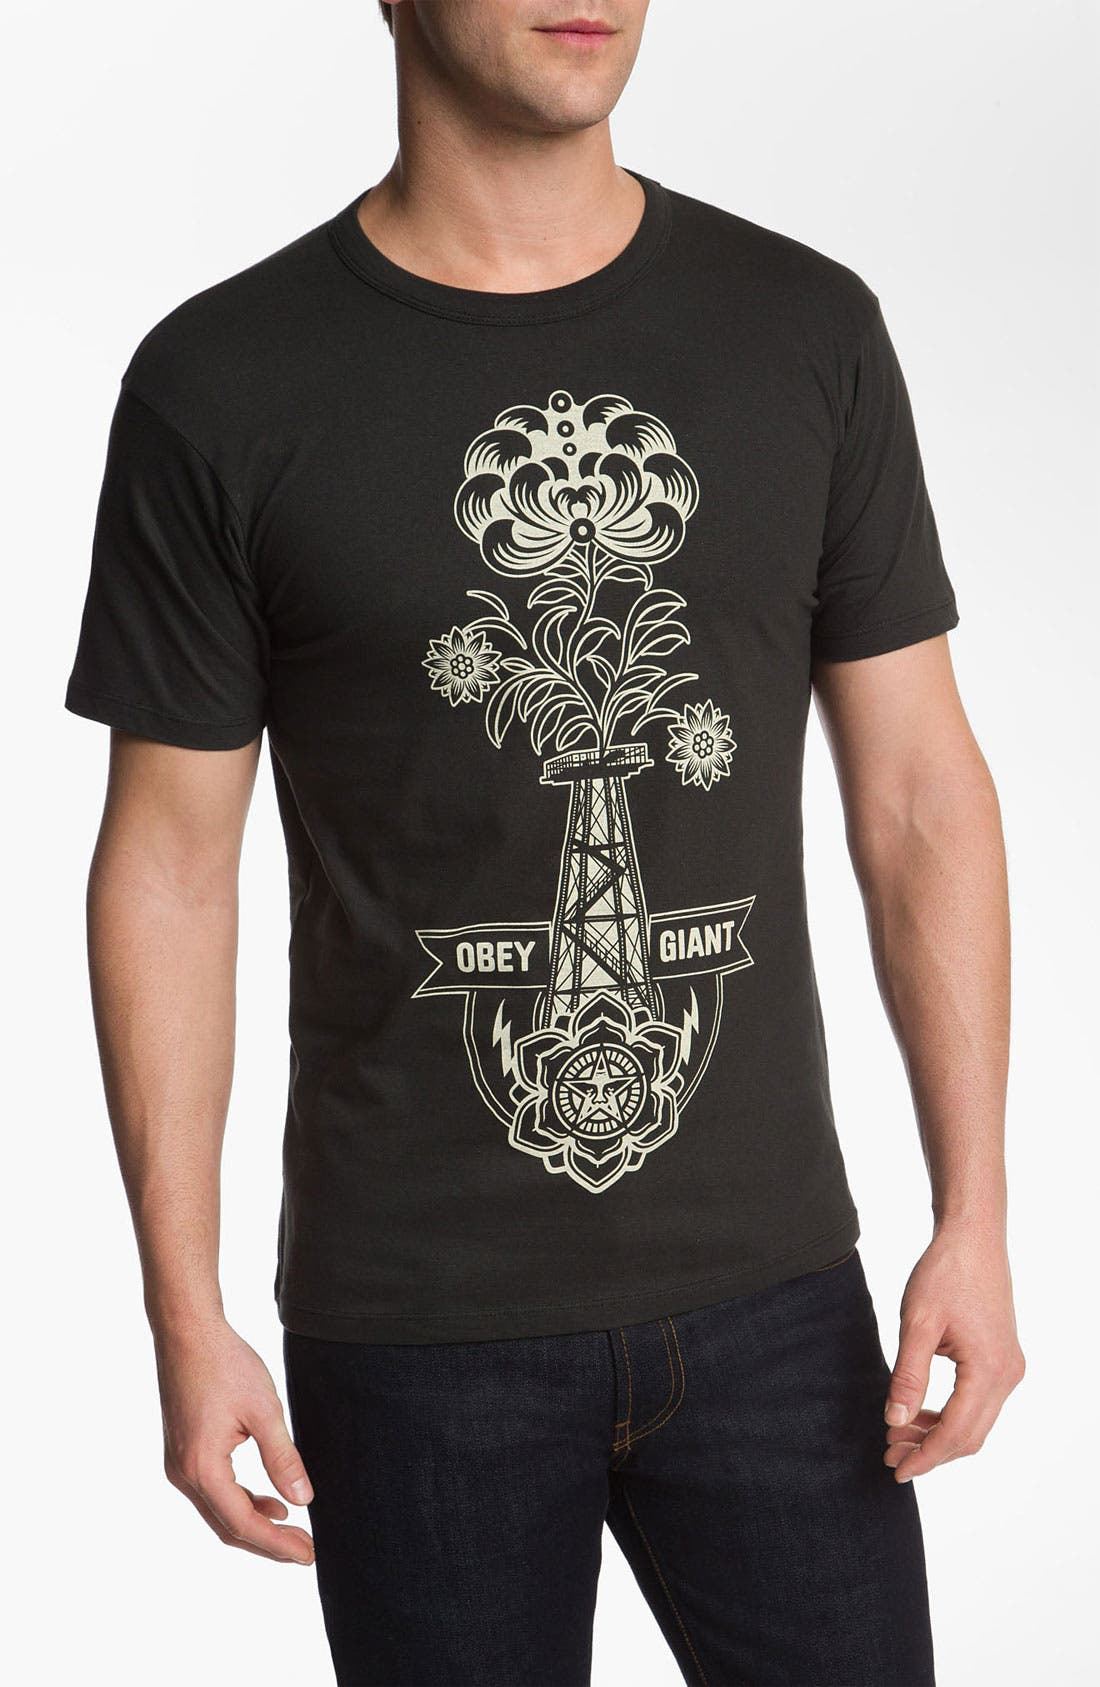 Alternate Image 1 Selected - Obey 'Oil Rig' Graphic T-Shirt